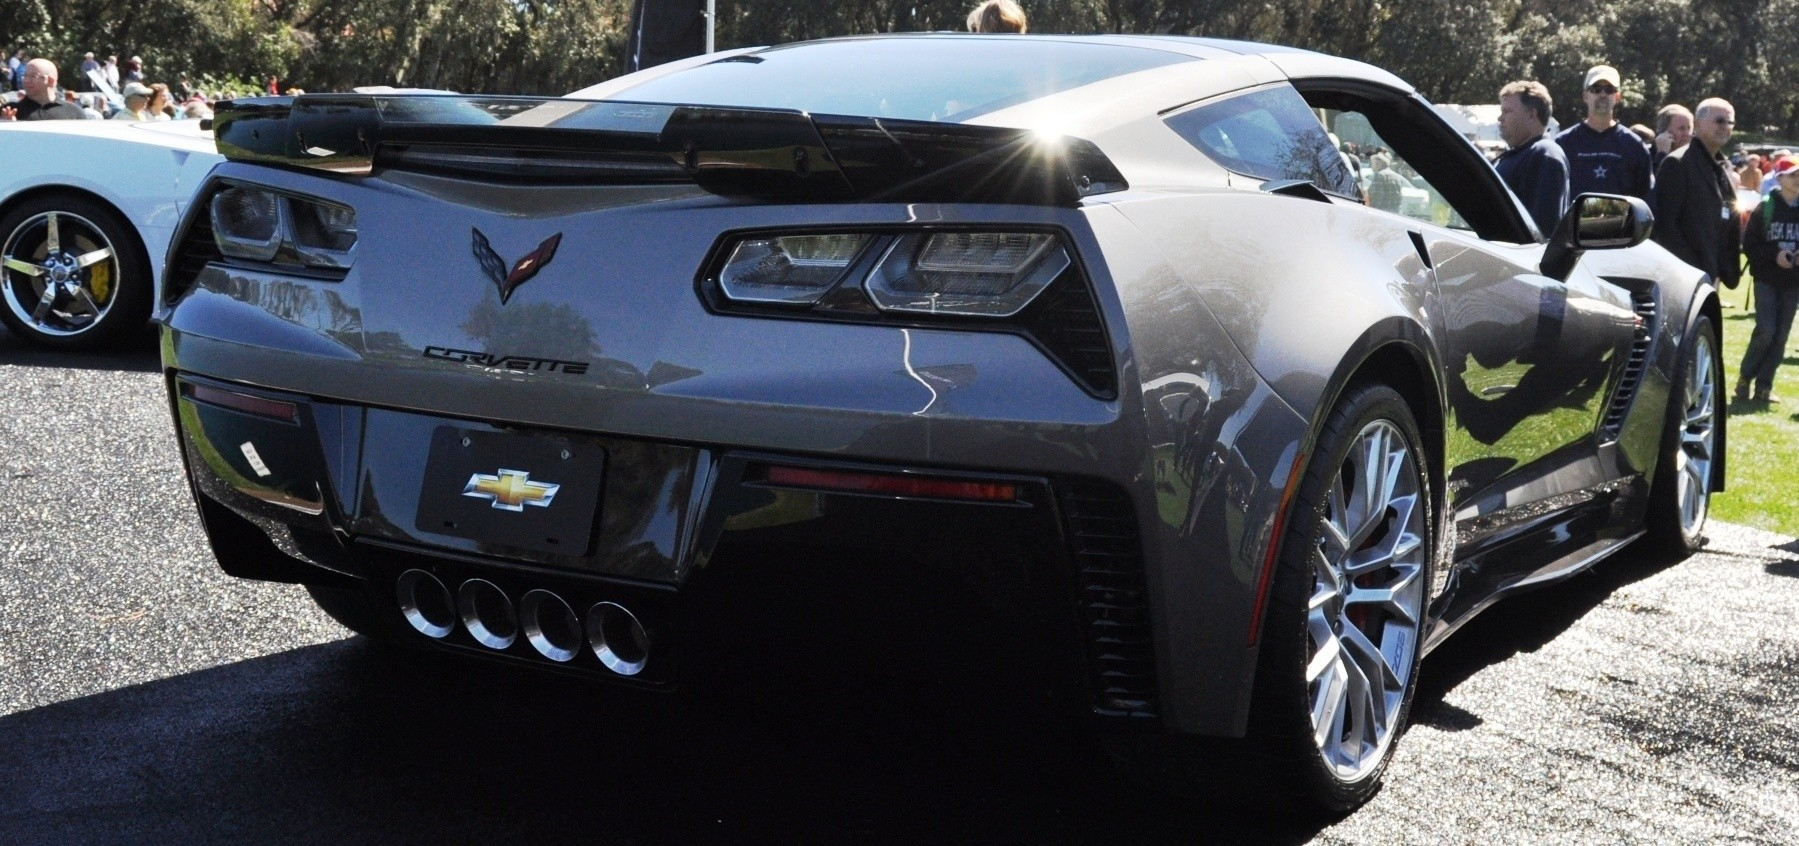 2015 Z06 -- First Outdoor Showing -- Forthcoming Chevrolet Corvette Track Monster Holds Still For 26 High-Res Photos 14